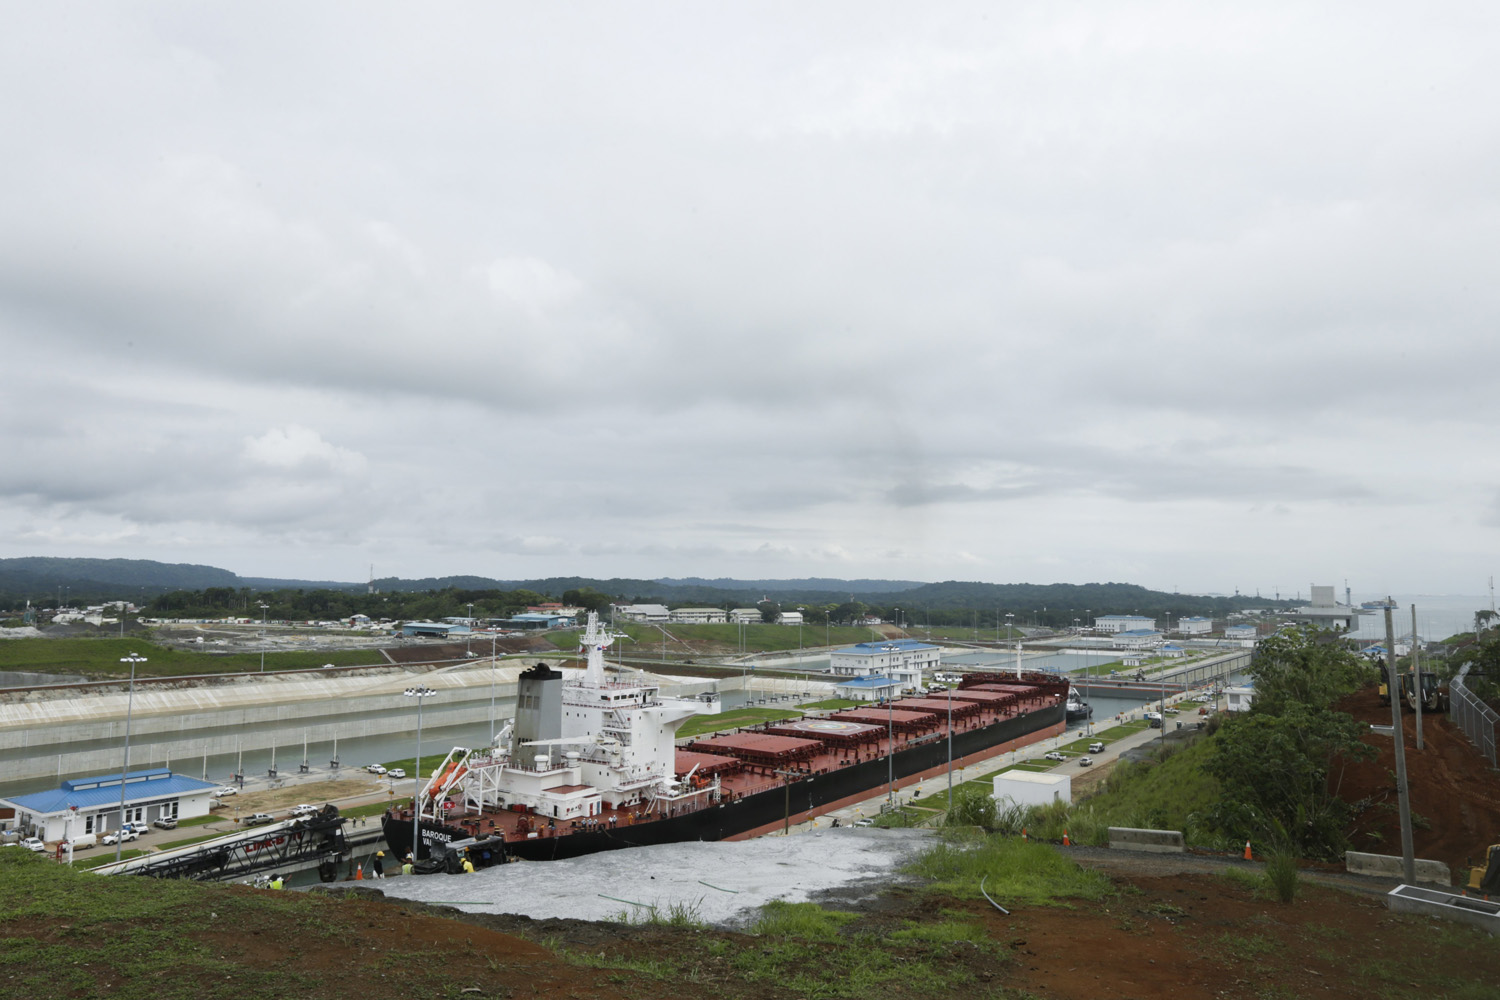 The Malta flagged cargo ship named Baroque, a post-Panamax vessel, navigates the Agua Clara locks on the second test day of the newly expanded Panama Canal in Agua Clara, Panama, (Arnulfo Franco/AP)